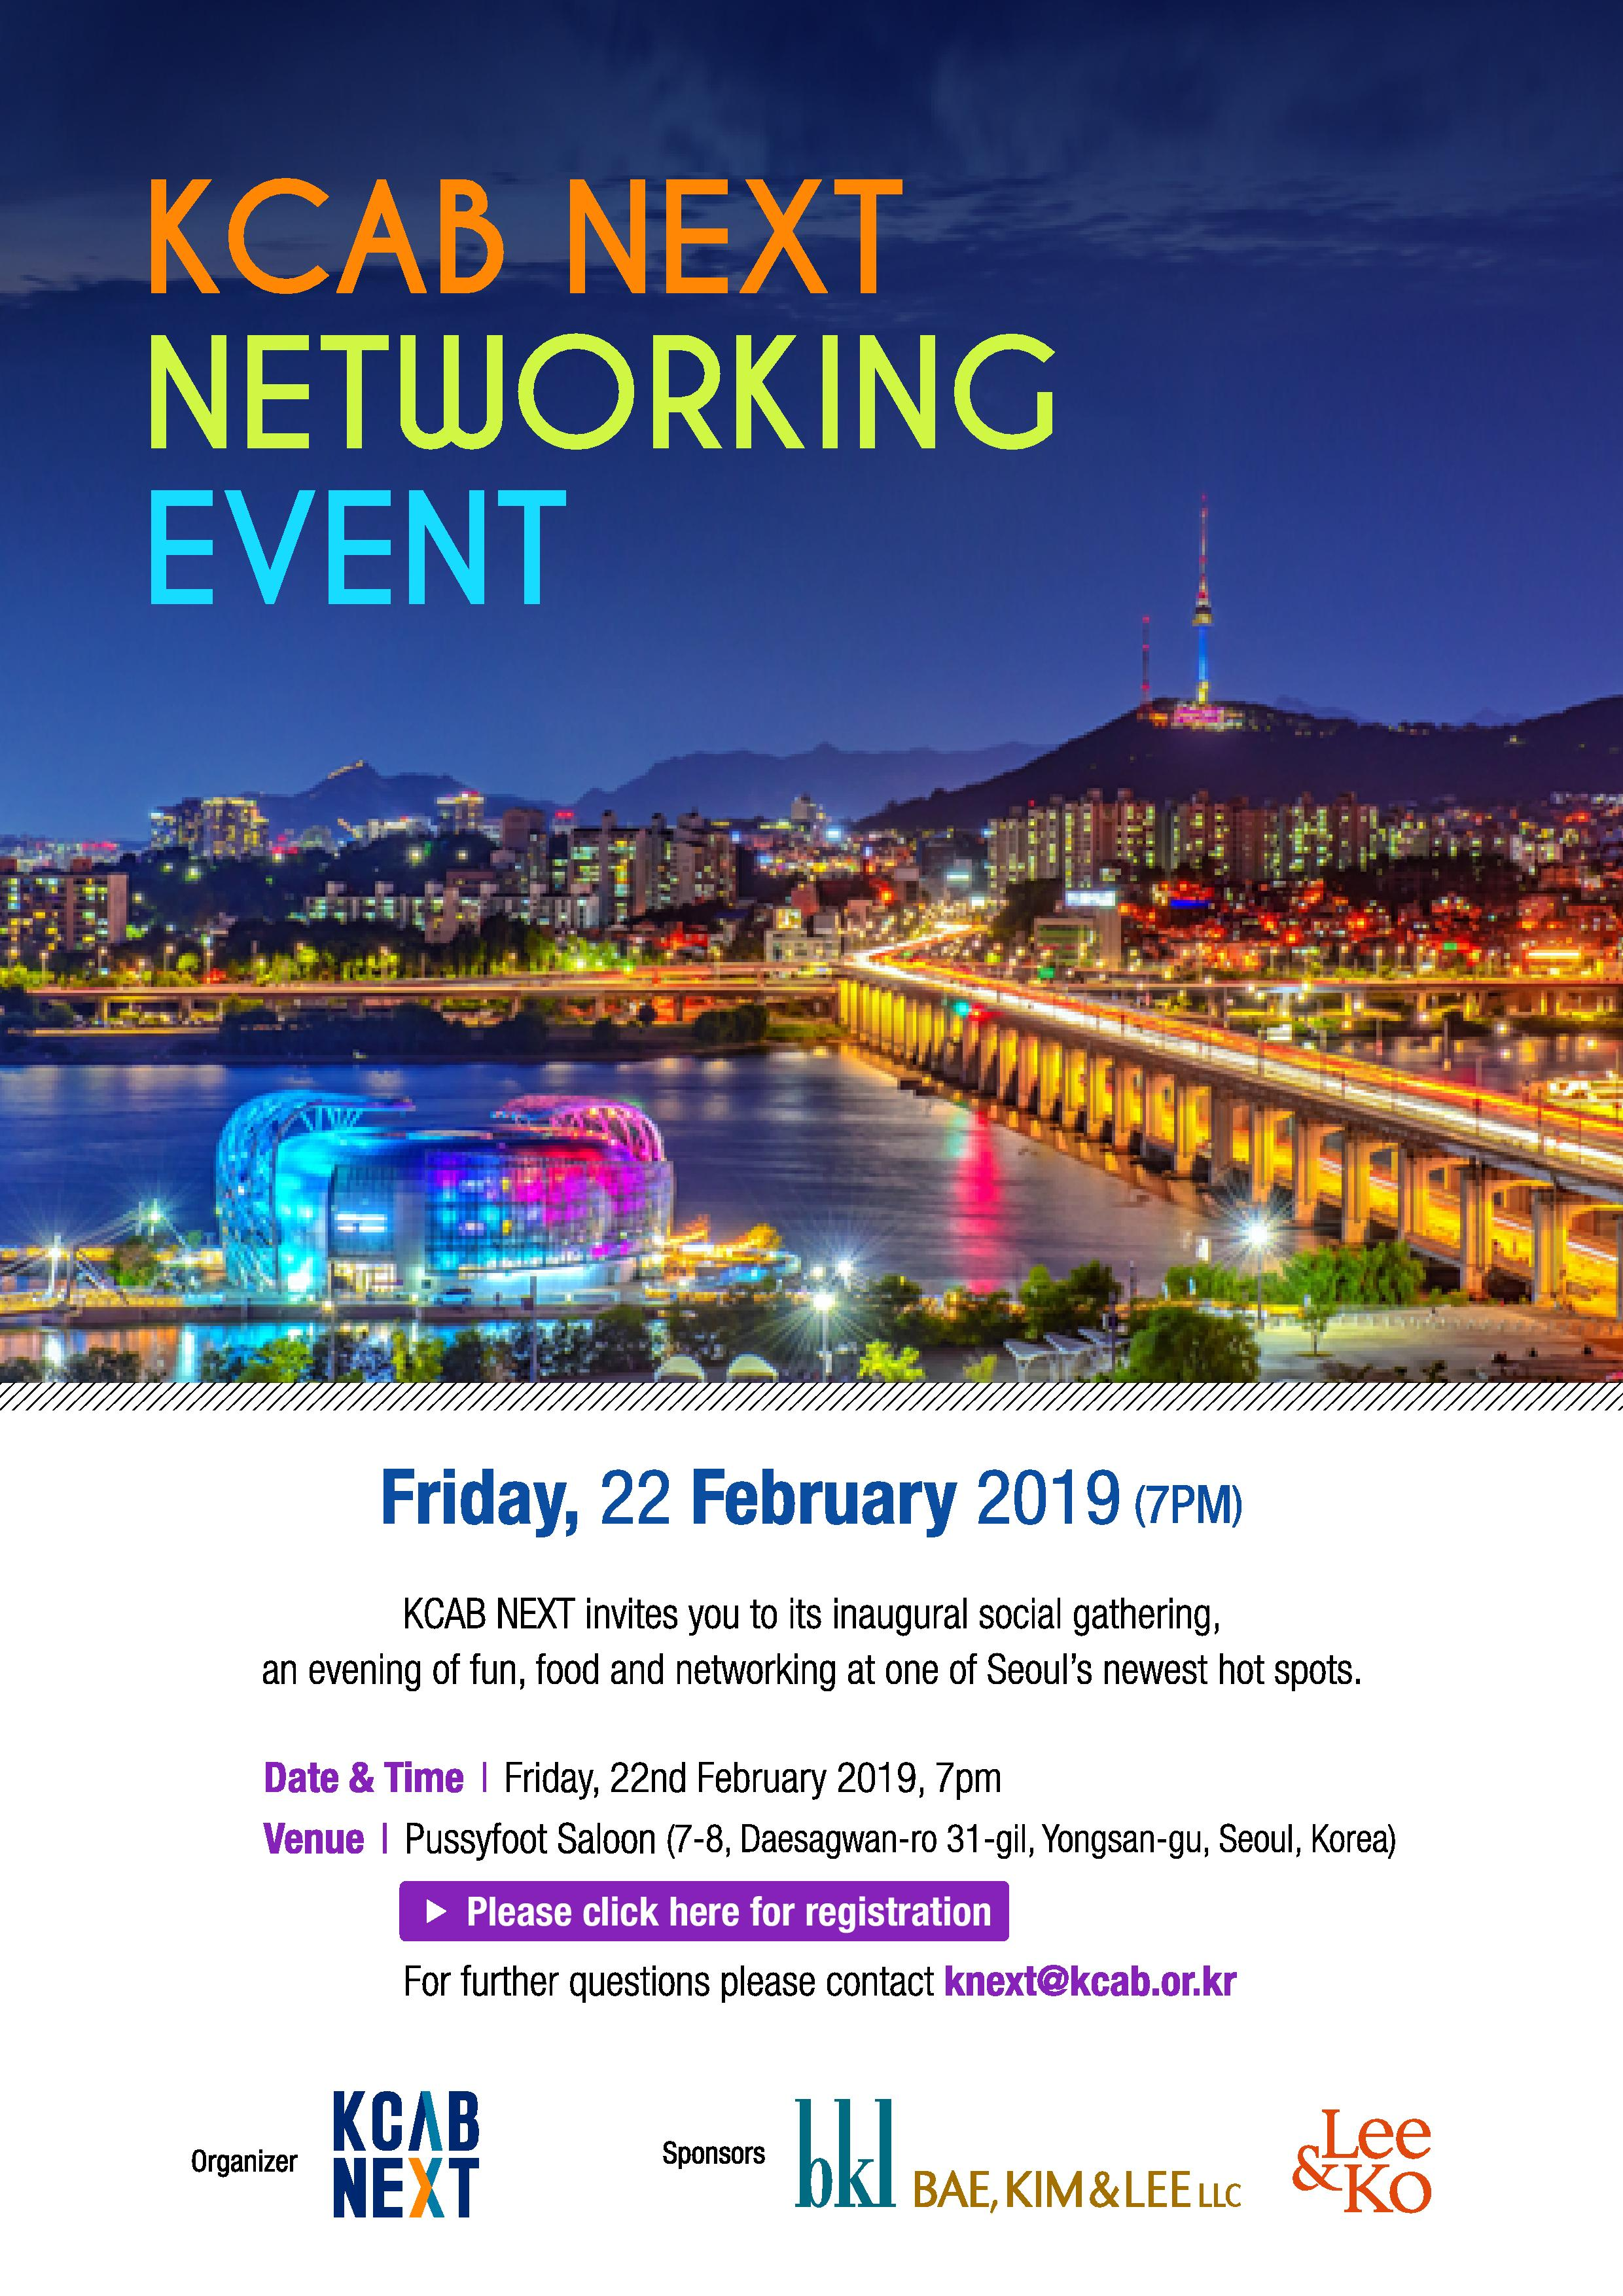 [KCAB NEXT] Networking Event